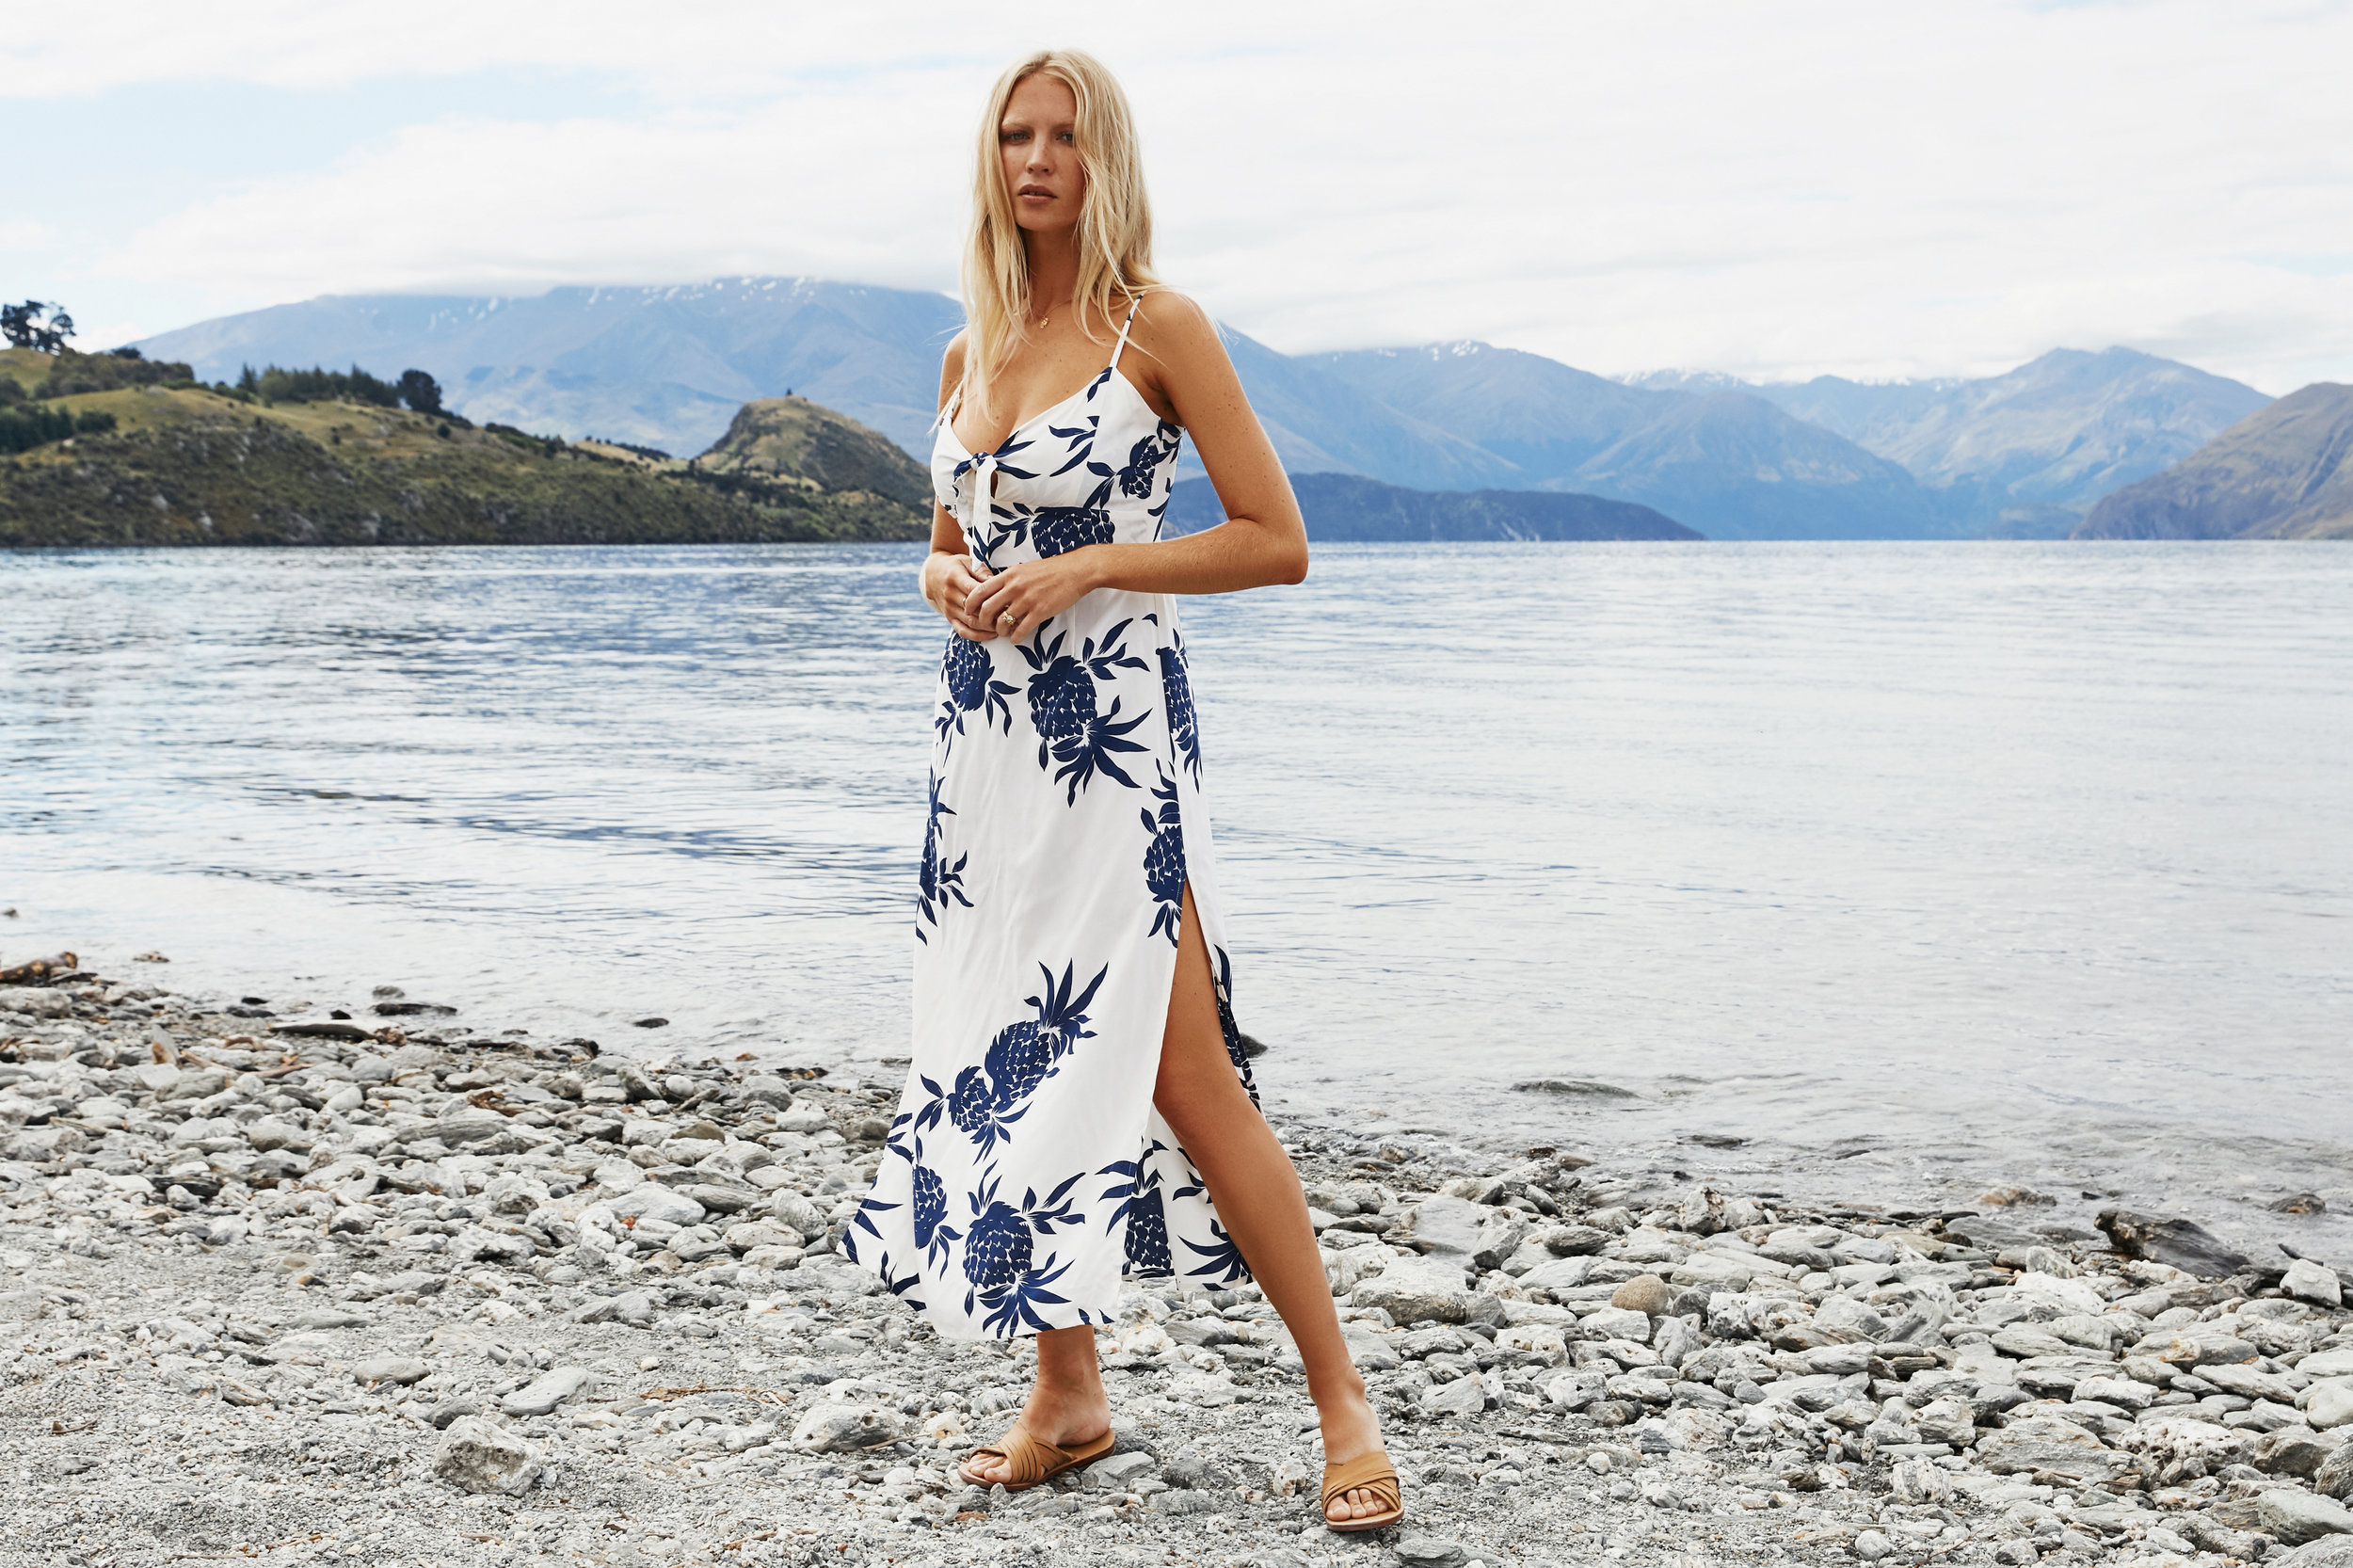 Flirty, fun, boho/contemporary collection from Bali. A family-owned company that's been around for 30 years with a boutique in Bali. The collection has something for everyone and effortlessly goes from beach to drinks.   beachgoldbali.com